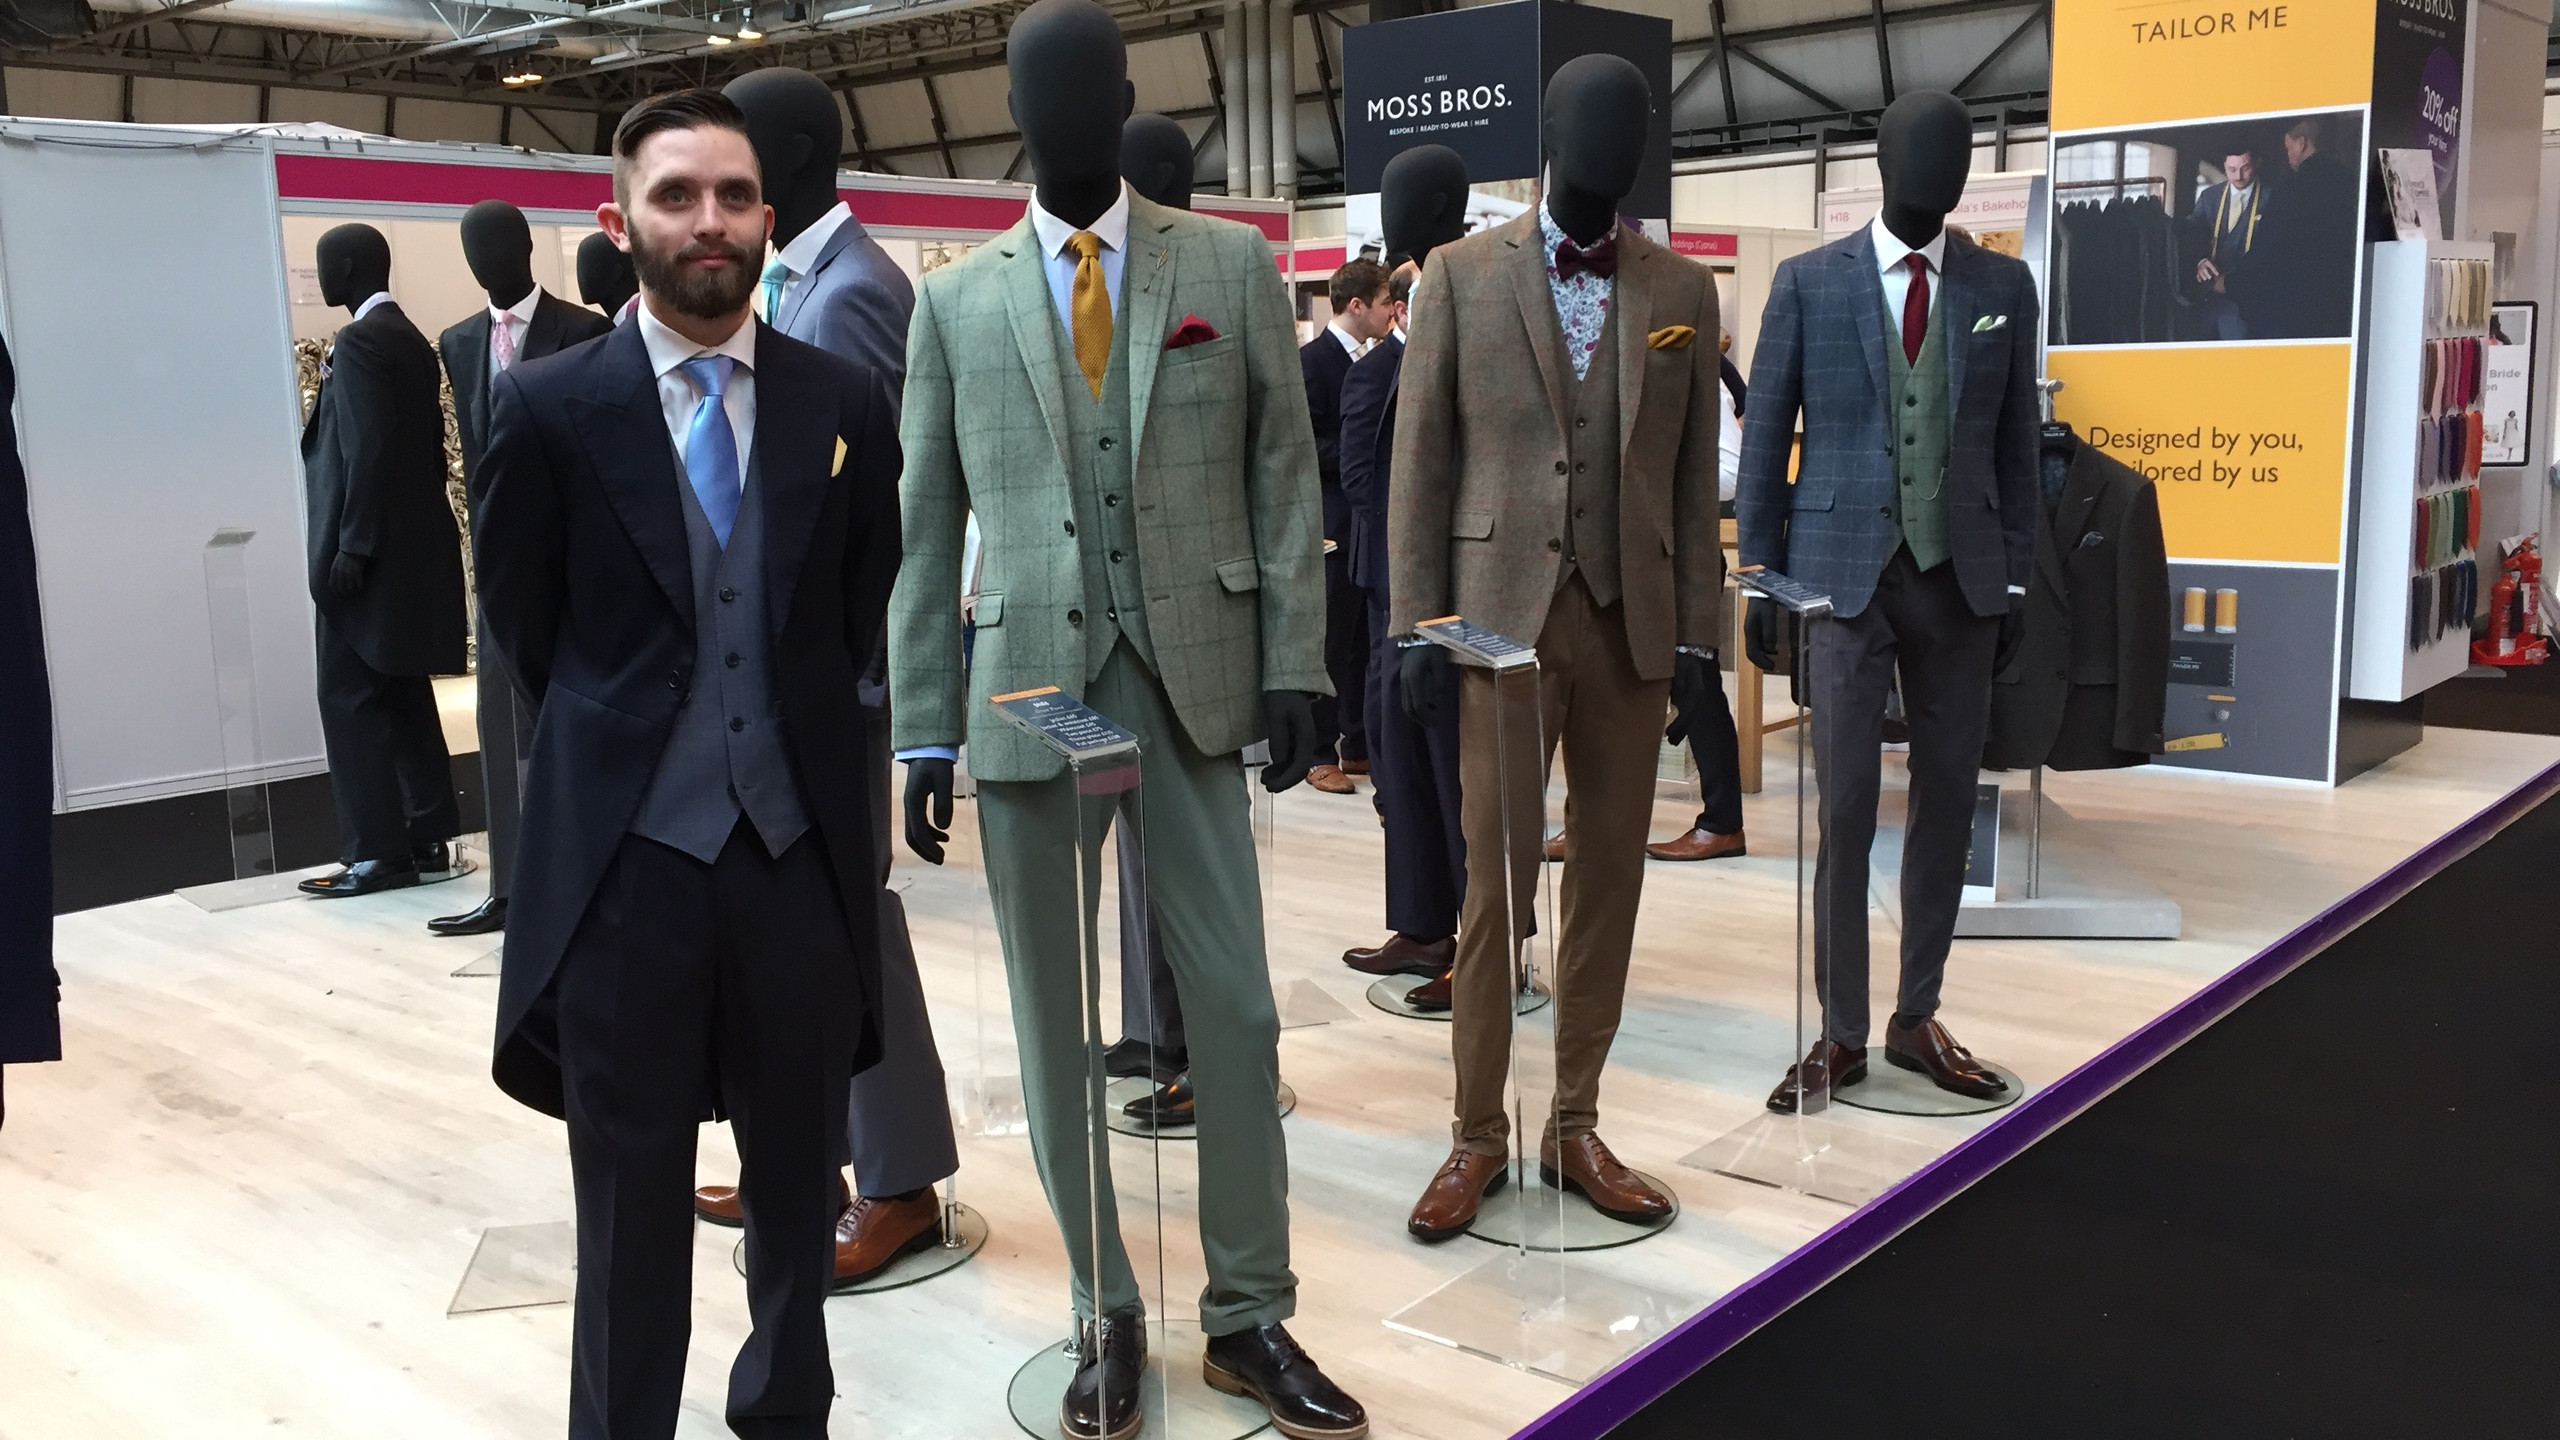 Let's not forget the men.... loving the tweed from Moss Bros Tailor Me